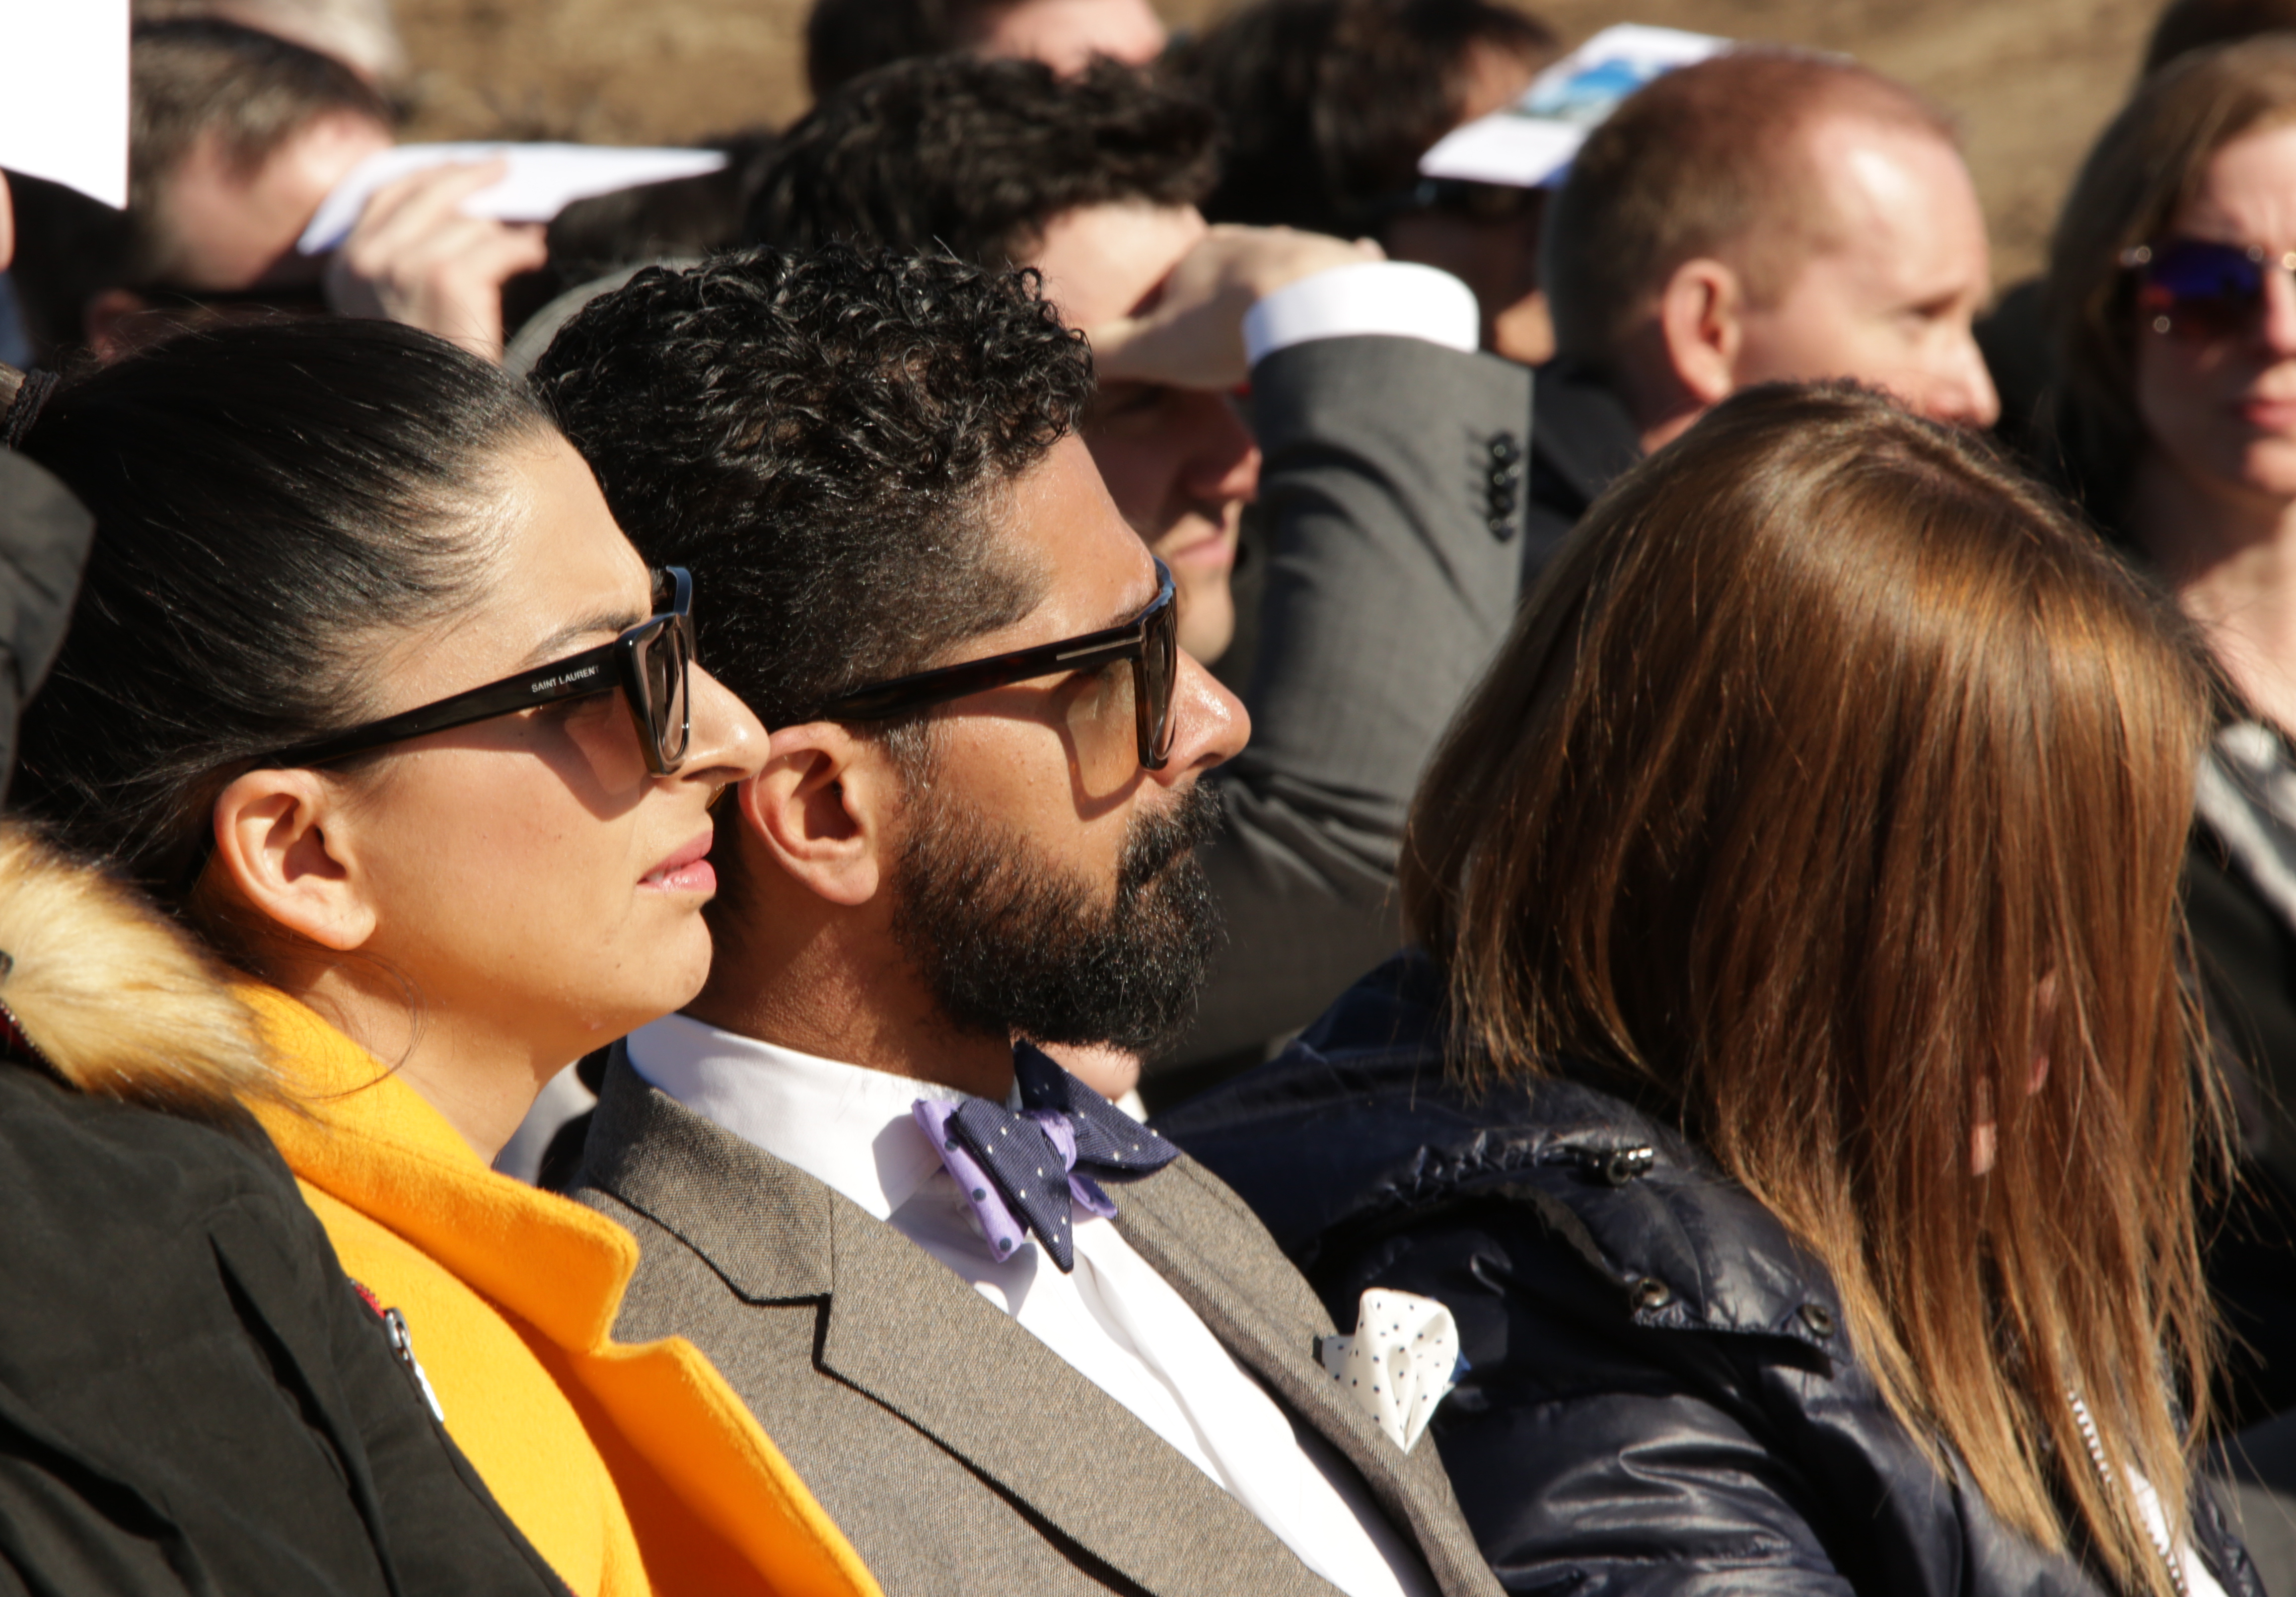 Beena Mannan and her husband, Dr. Fahim Rahim, represent the Pocatello, Idaho, Muslim community at the March 16, 2019, groundbreaking ceremony of the future Pocatello Idaho Temple. Rahim wrote an opinion piece in the local newspaper lauding the Church for its efforts to promote inclusivity.